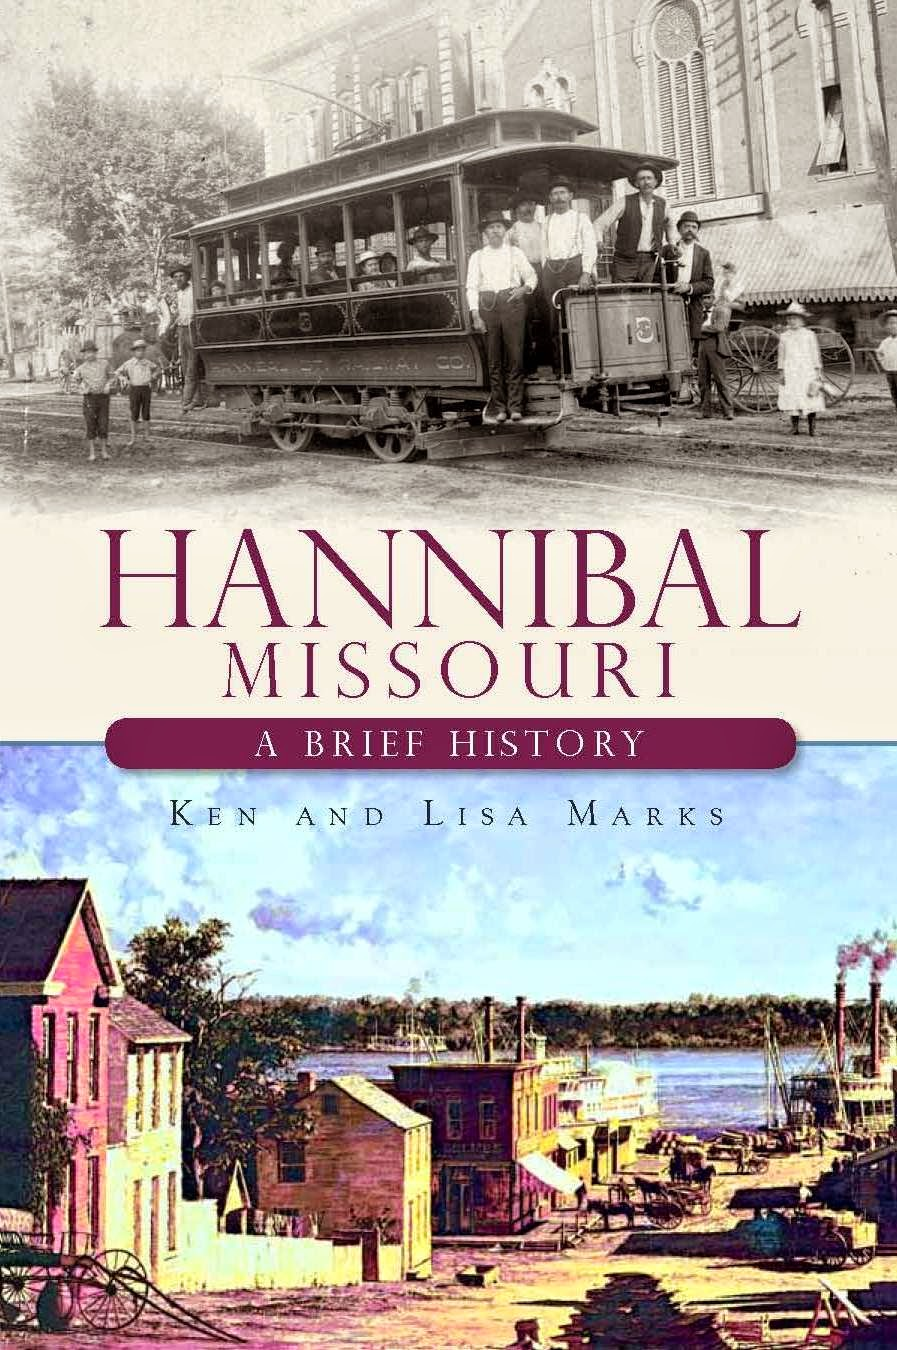 Hannibal, Missouri: A Brief History